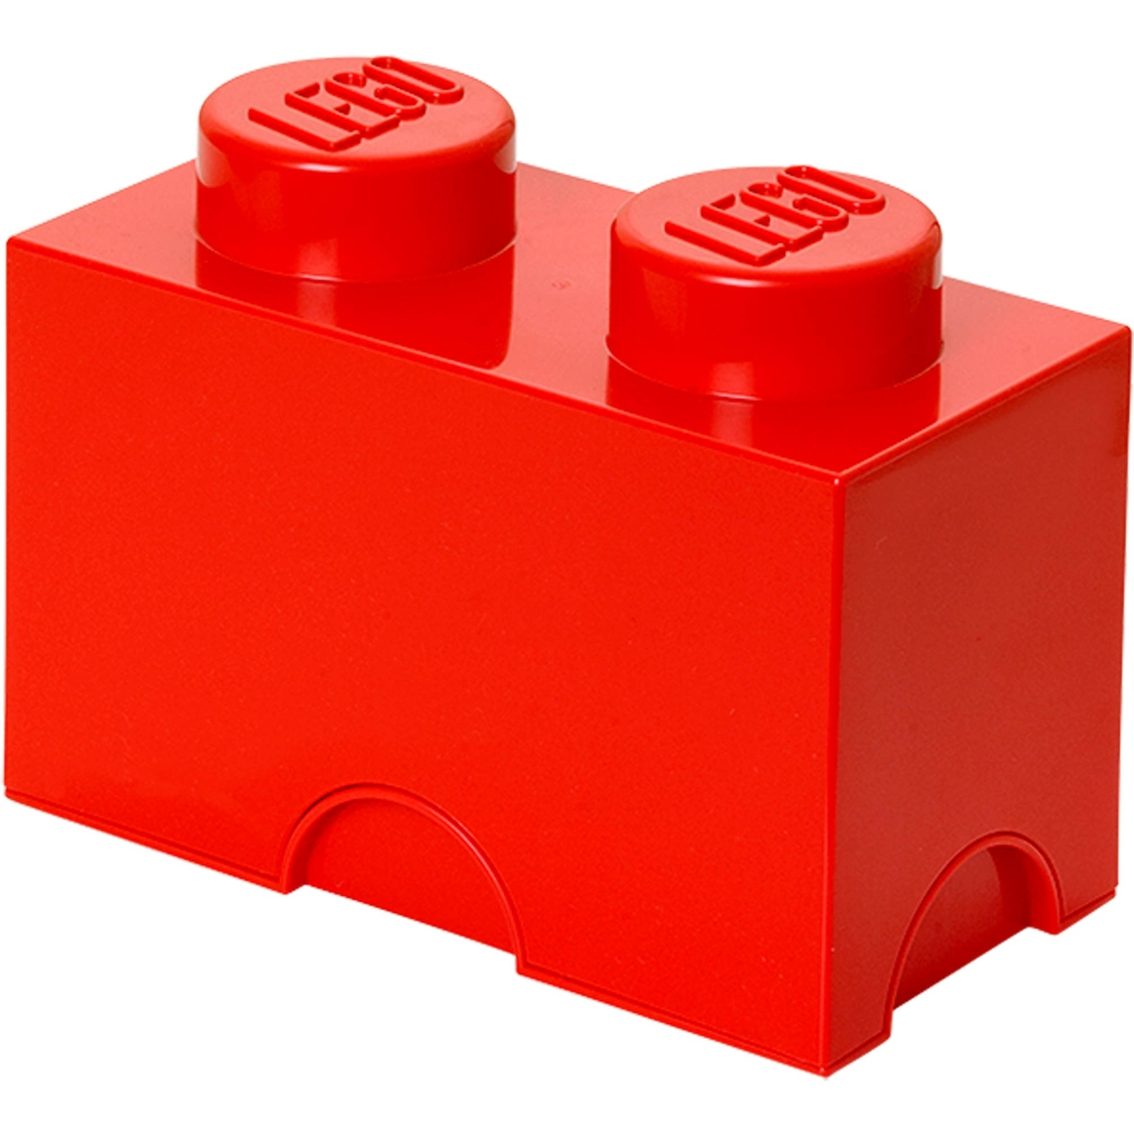 1134x1134 Lego Bricks Amp More Rectangular Storage Brick 2 Lego Bricks